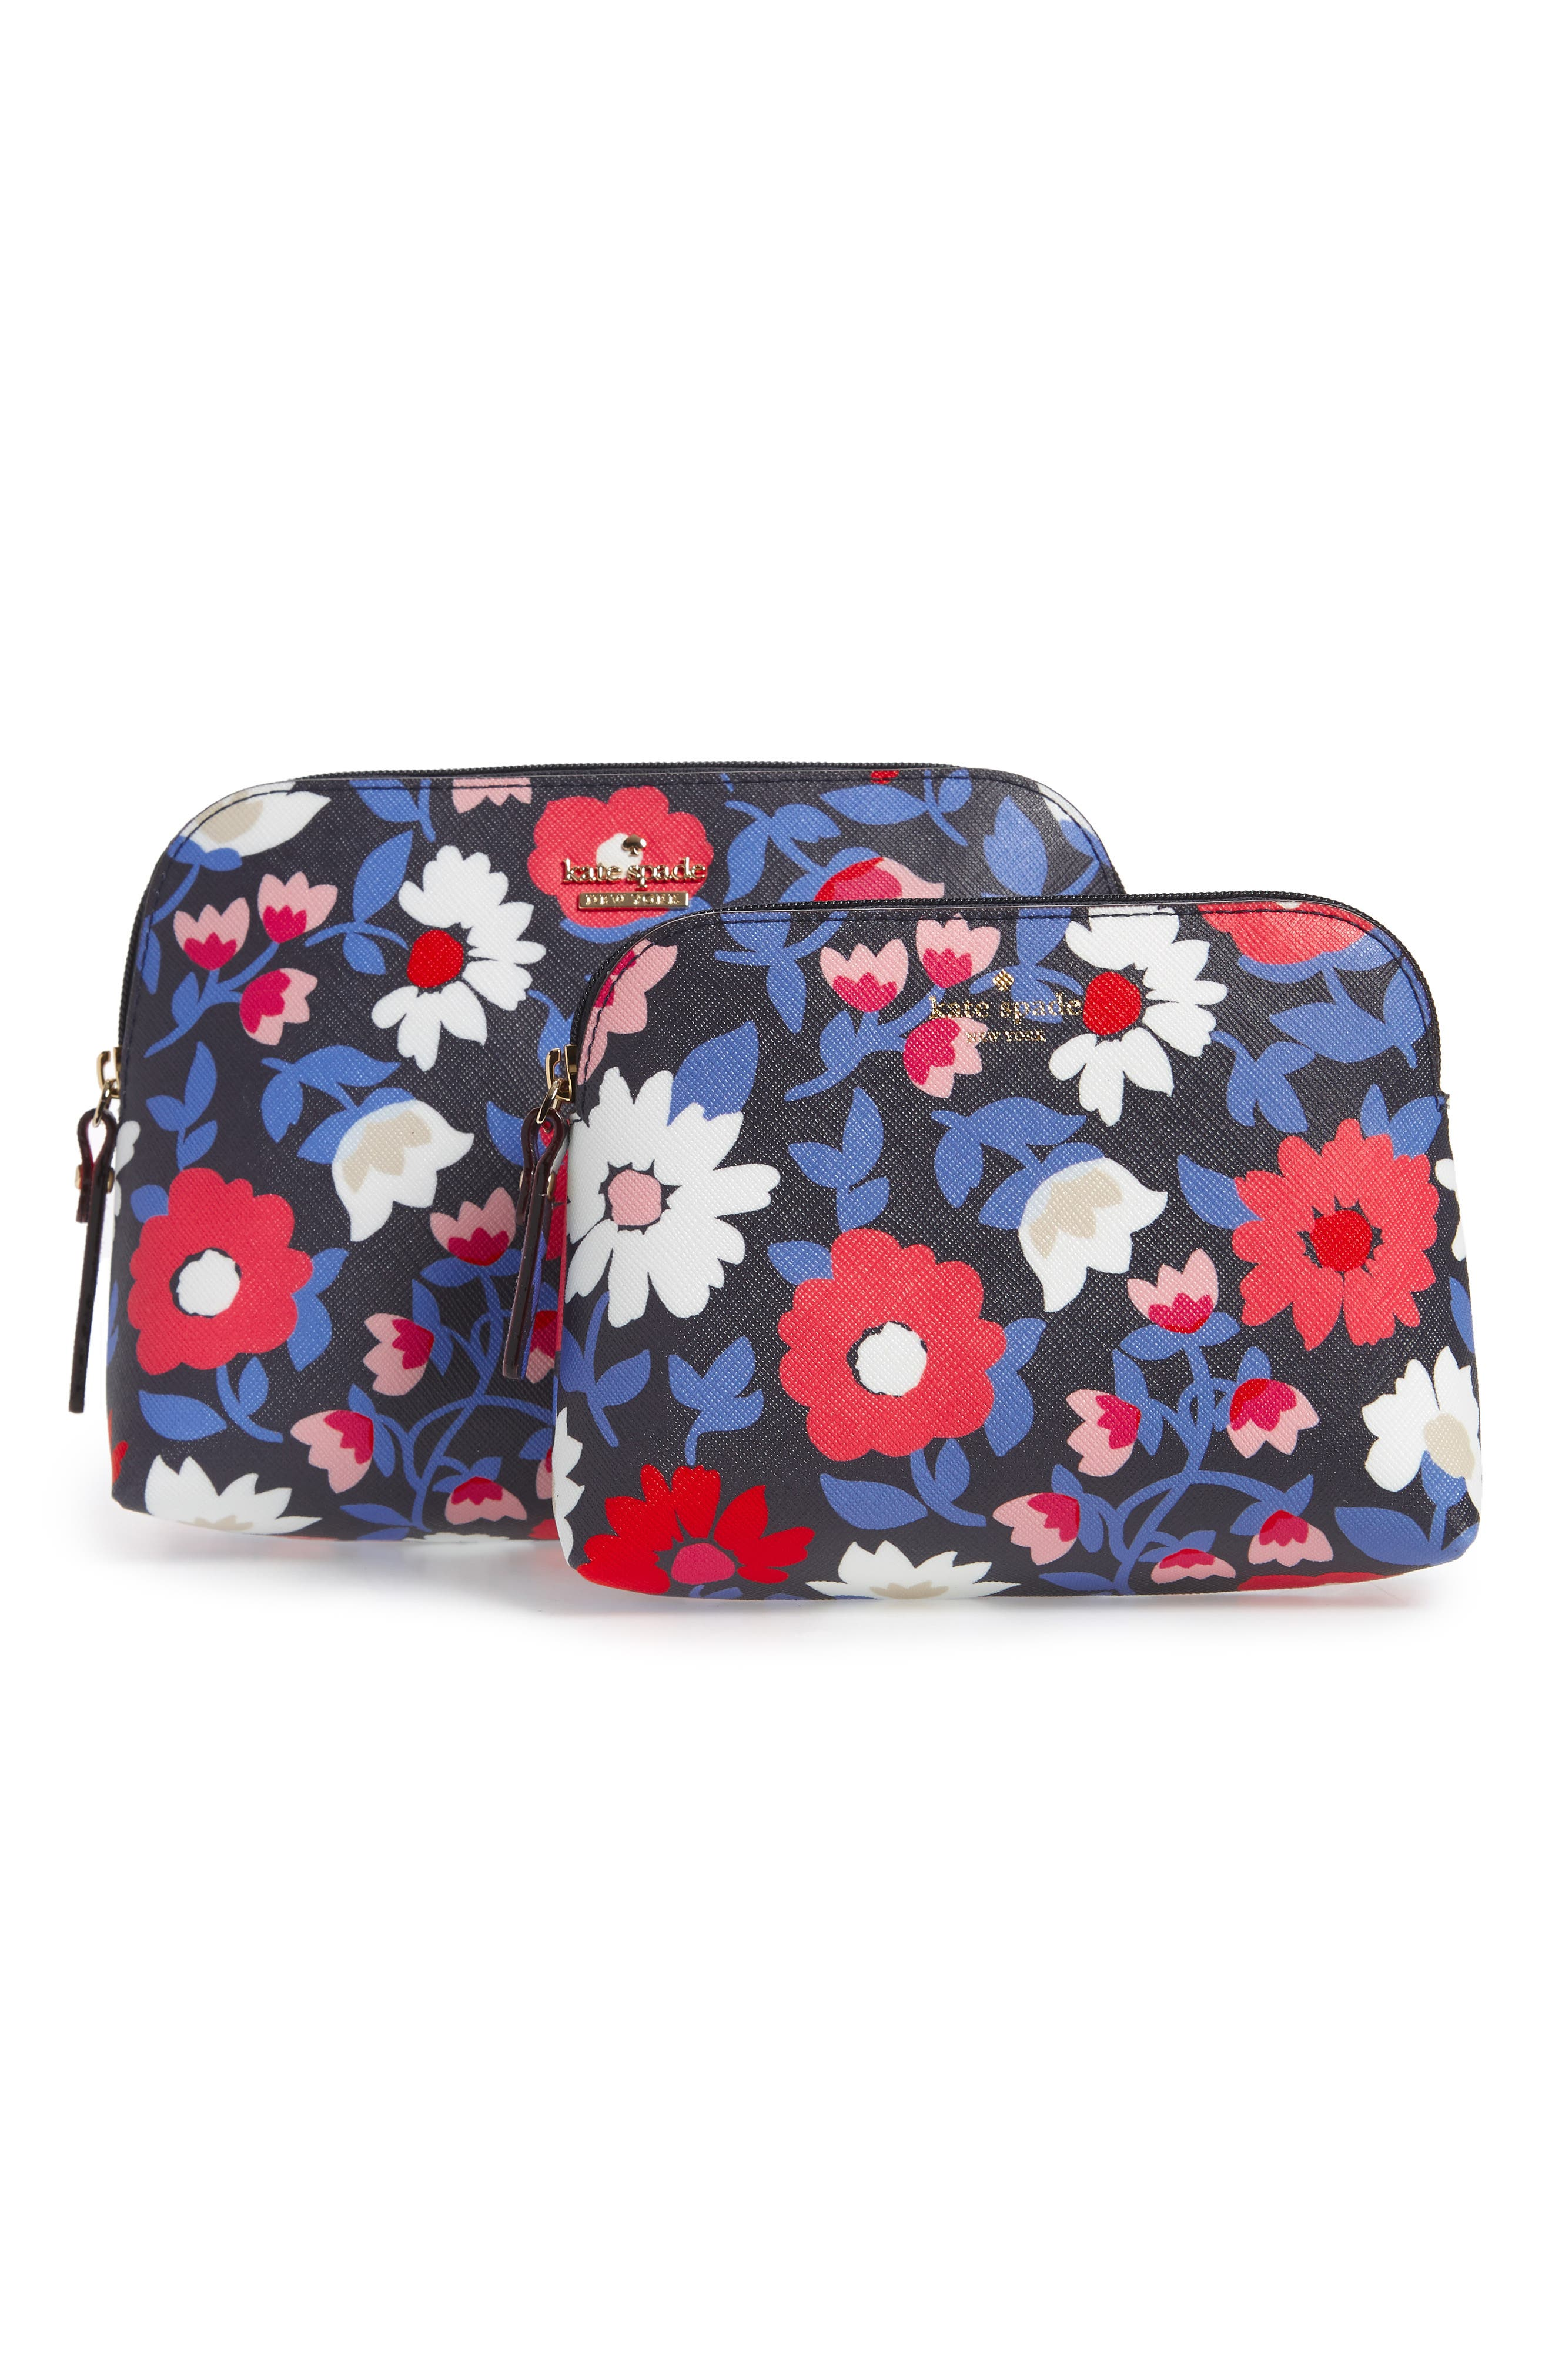 kate spade new york cameron street - daisy briley set of 2 coated canvas cosmetic cases